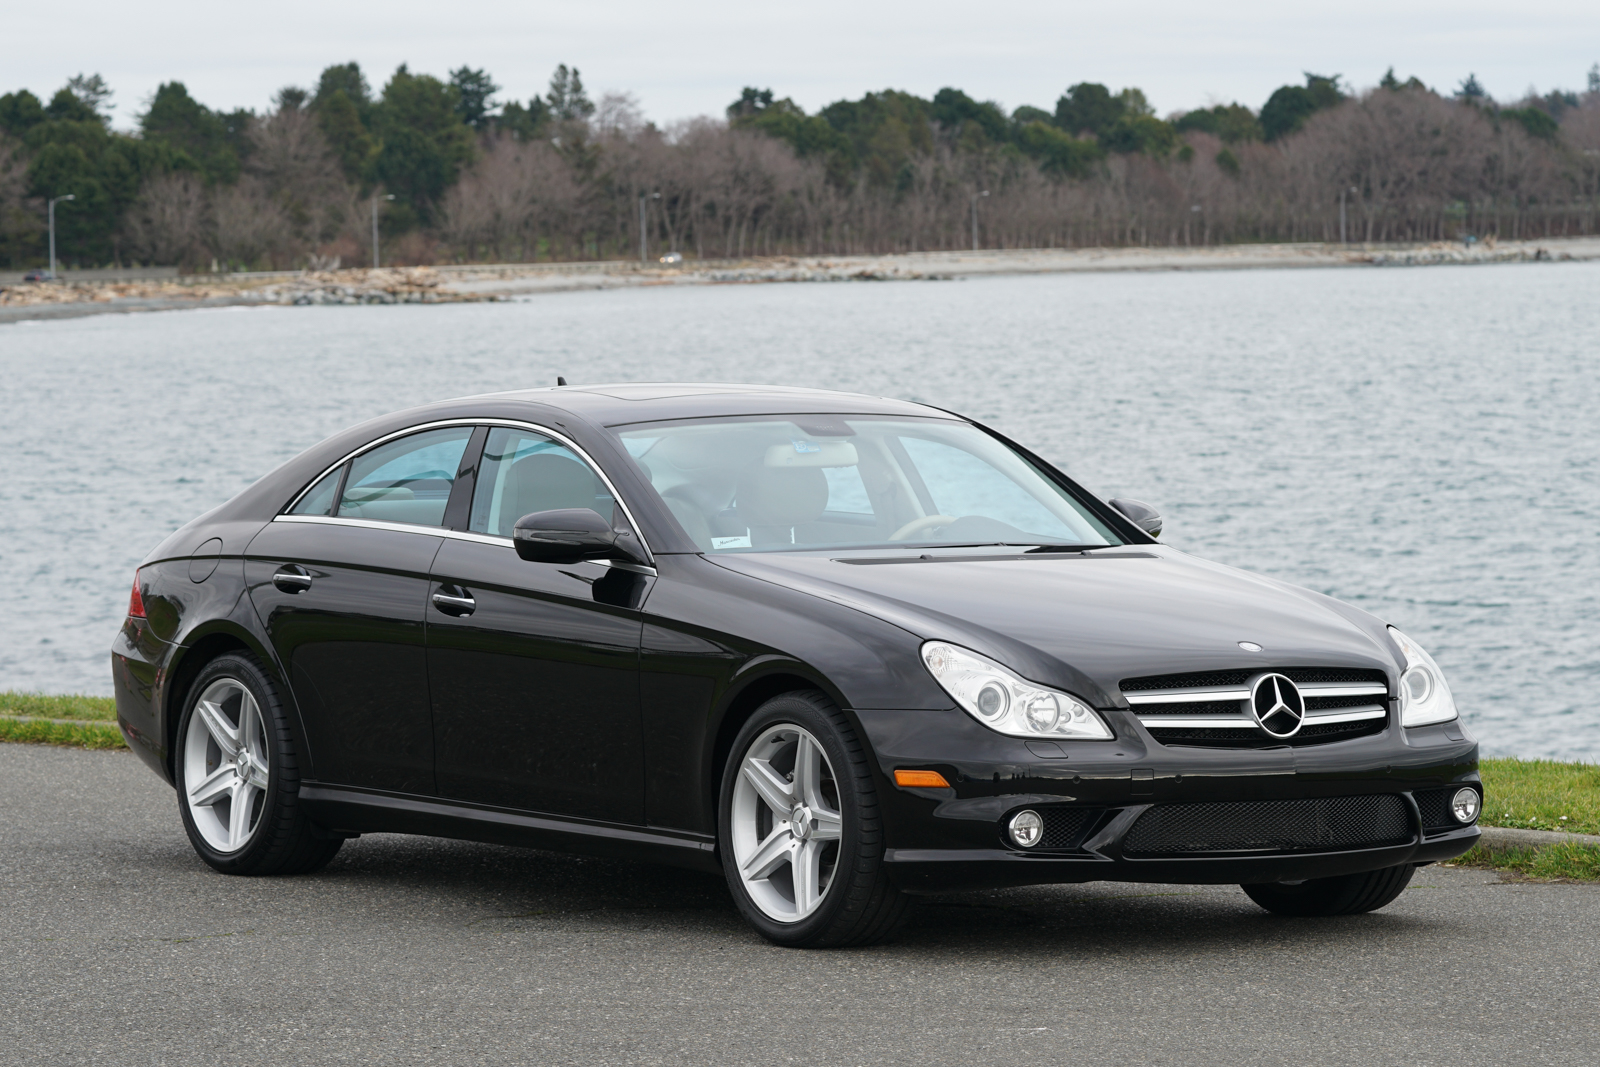 2009 Mercedes-Benz CLS 550 for sale